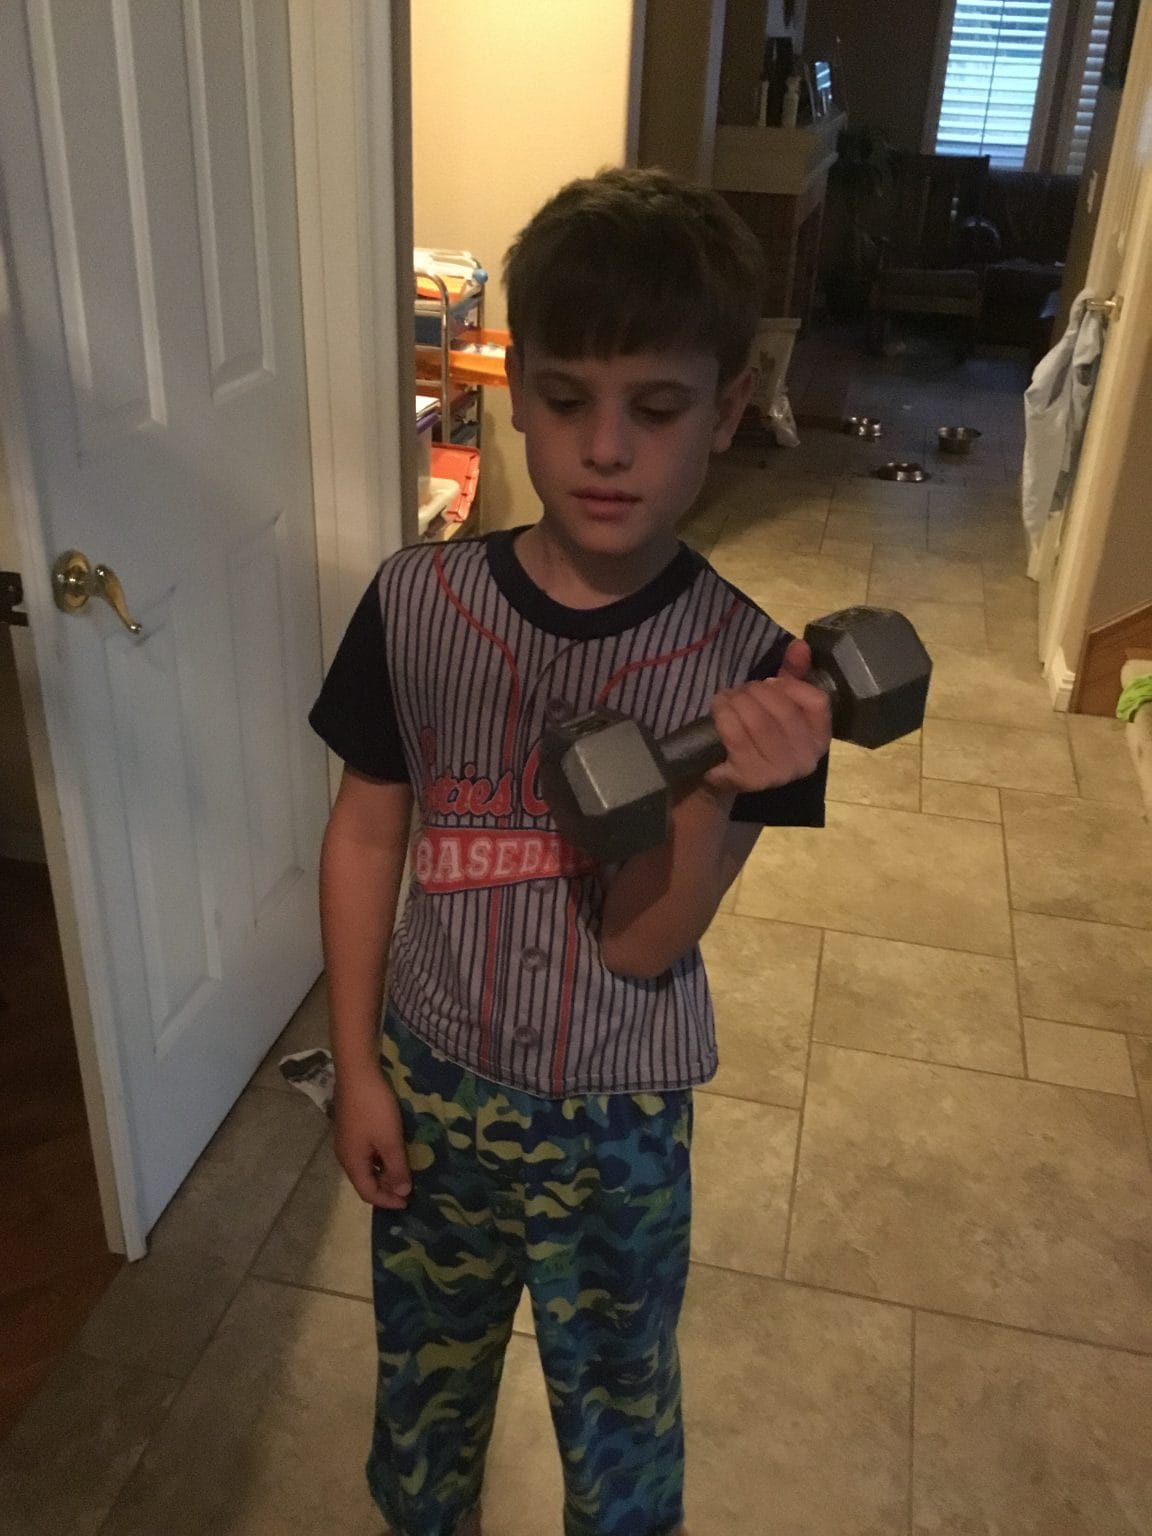 Strength Training- a young boy lifts a dumbbell